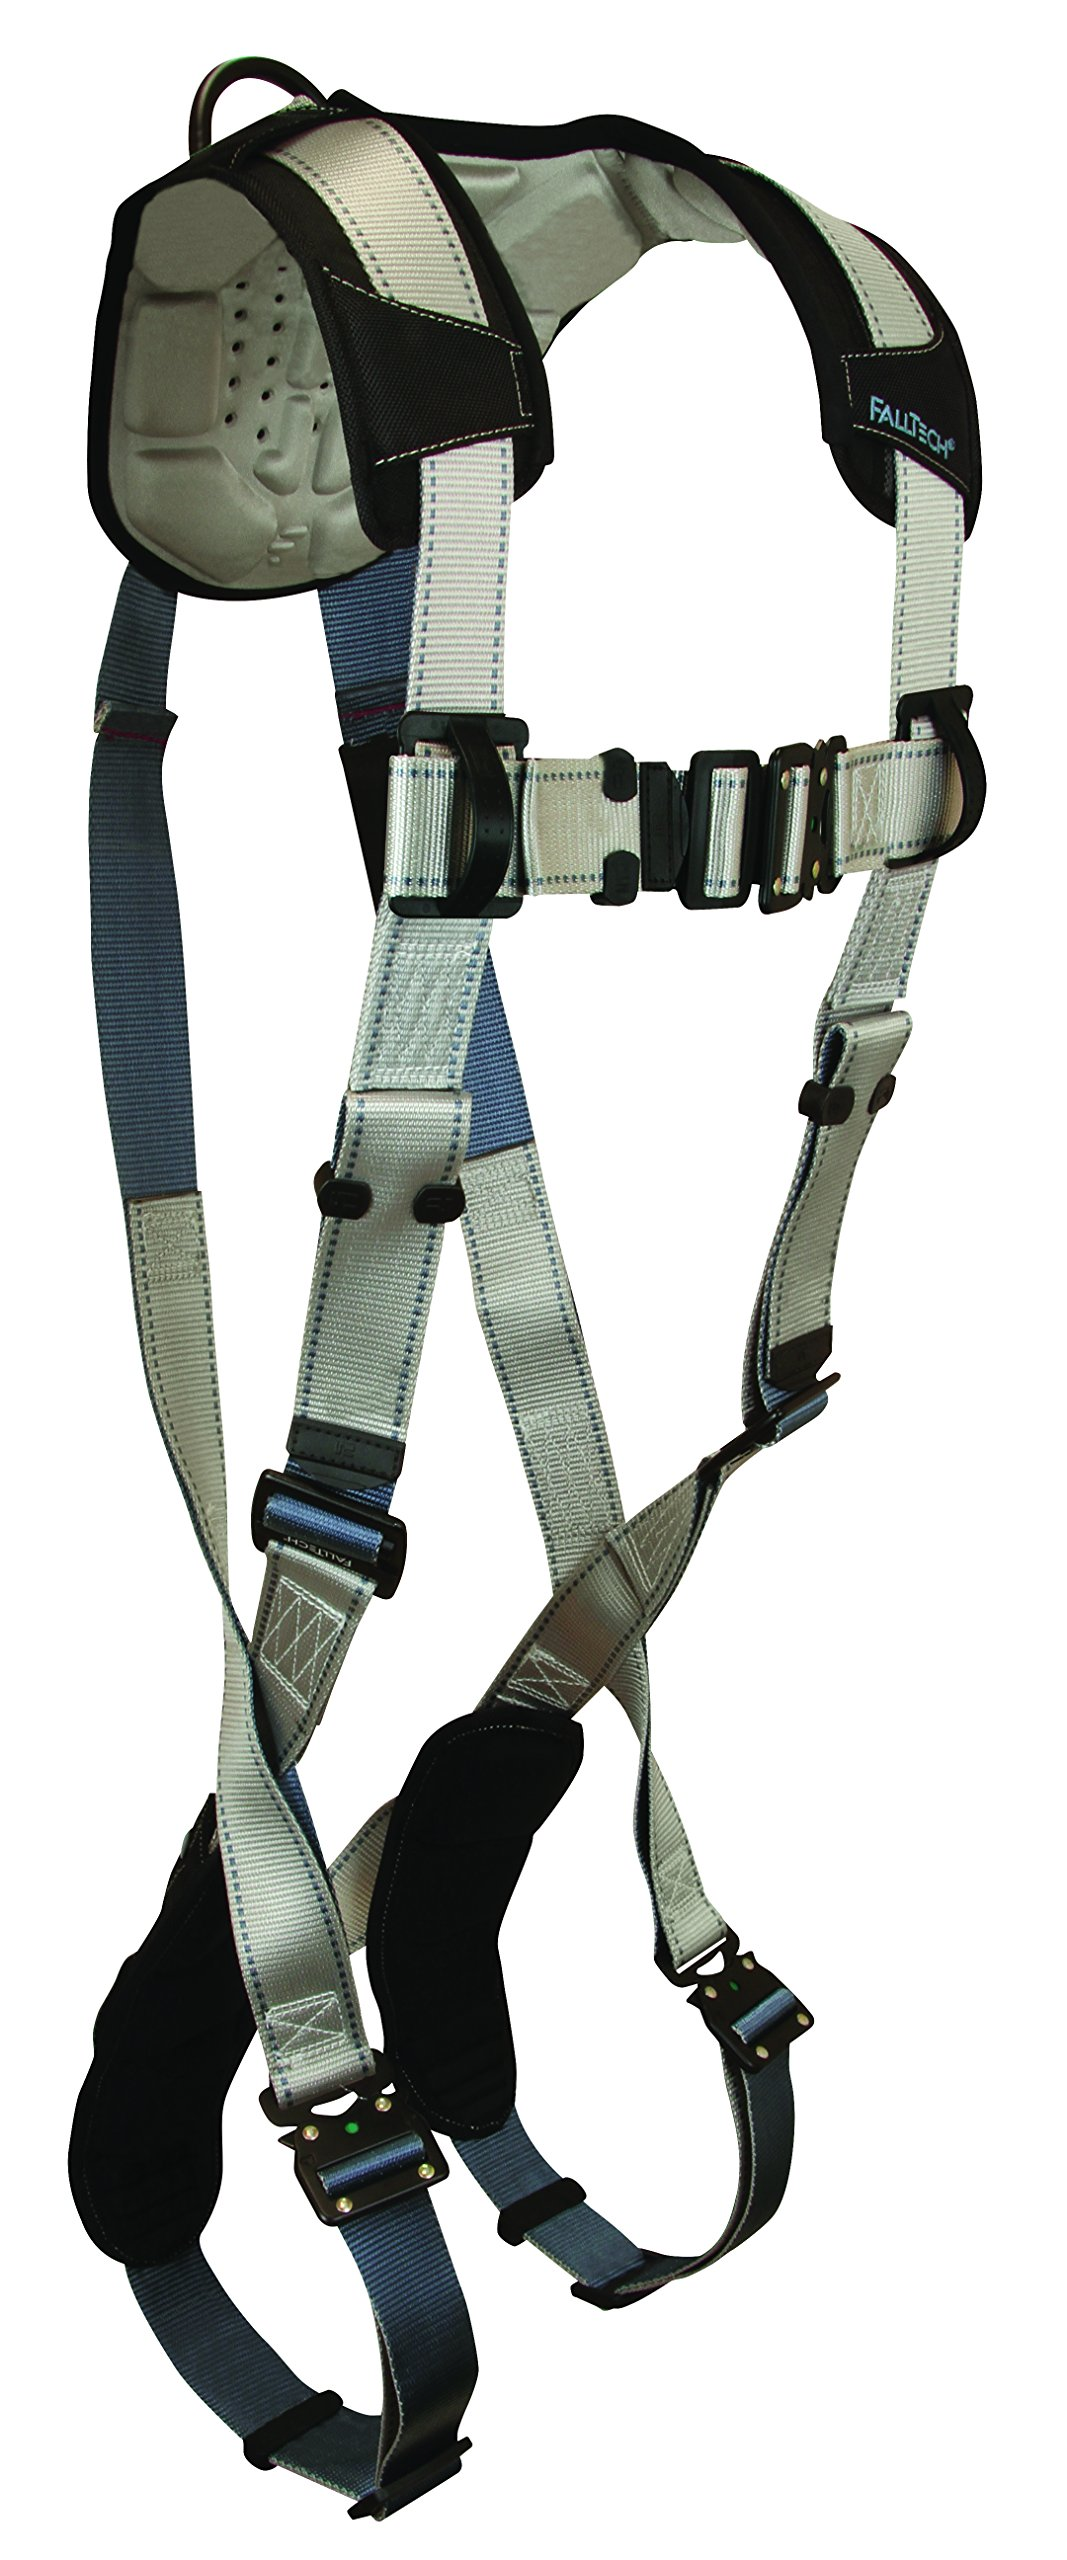 FallTech 7087L FlowTech Non-Belted Full Body Harness with 1 Back D-Ring, Quick Connect Legs and Chest, FlowScape Shoulder and Leg Pads, Gray/Black, Large